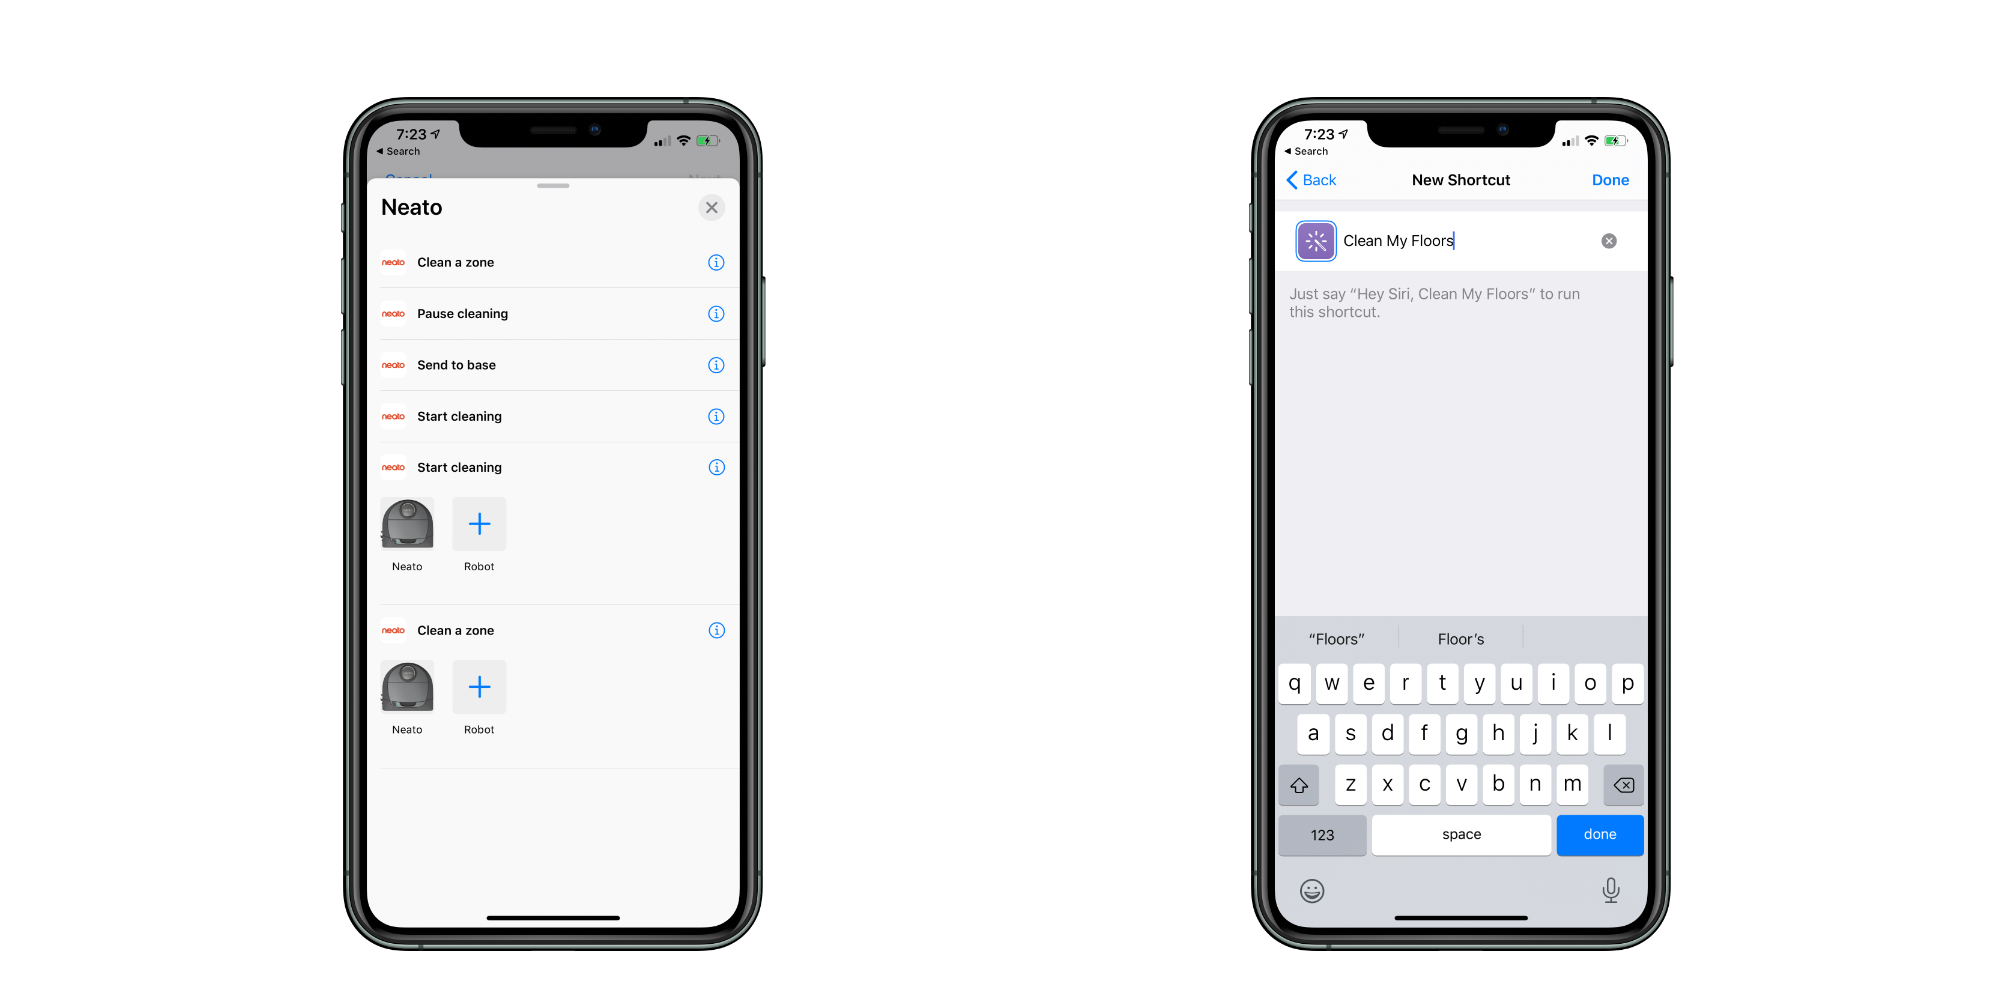 Siri Shortcuts with Neato